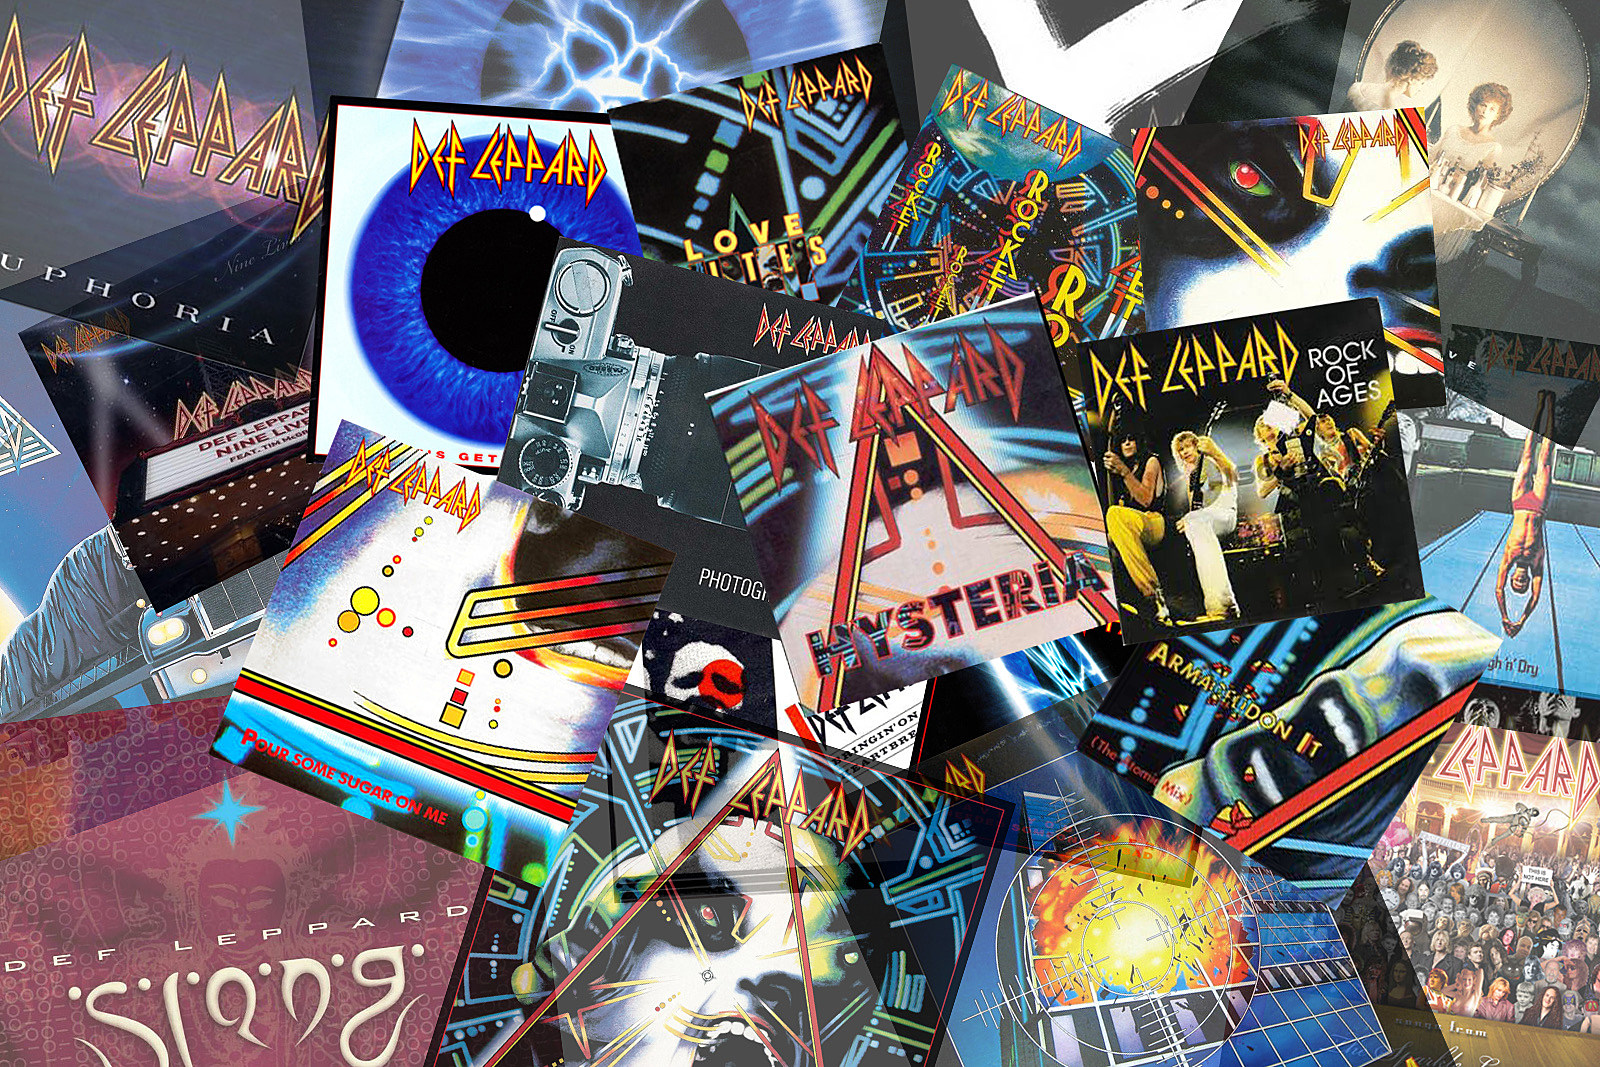 All 145 Original Def Leppard Songs Ranked Worst To Best